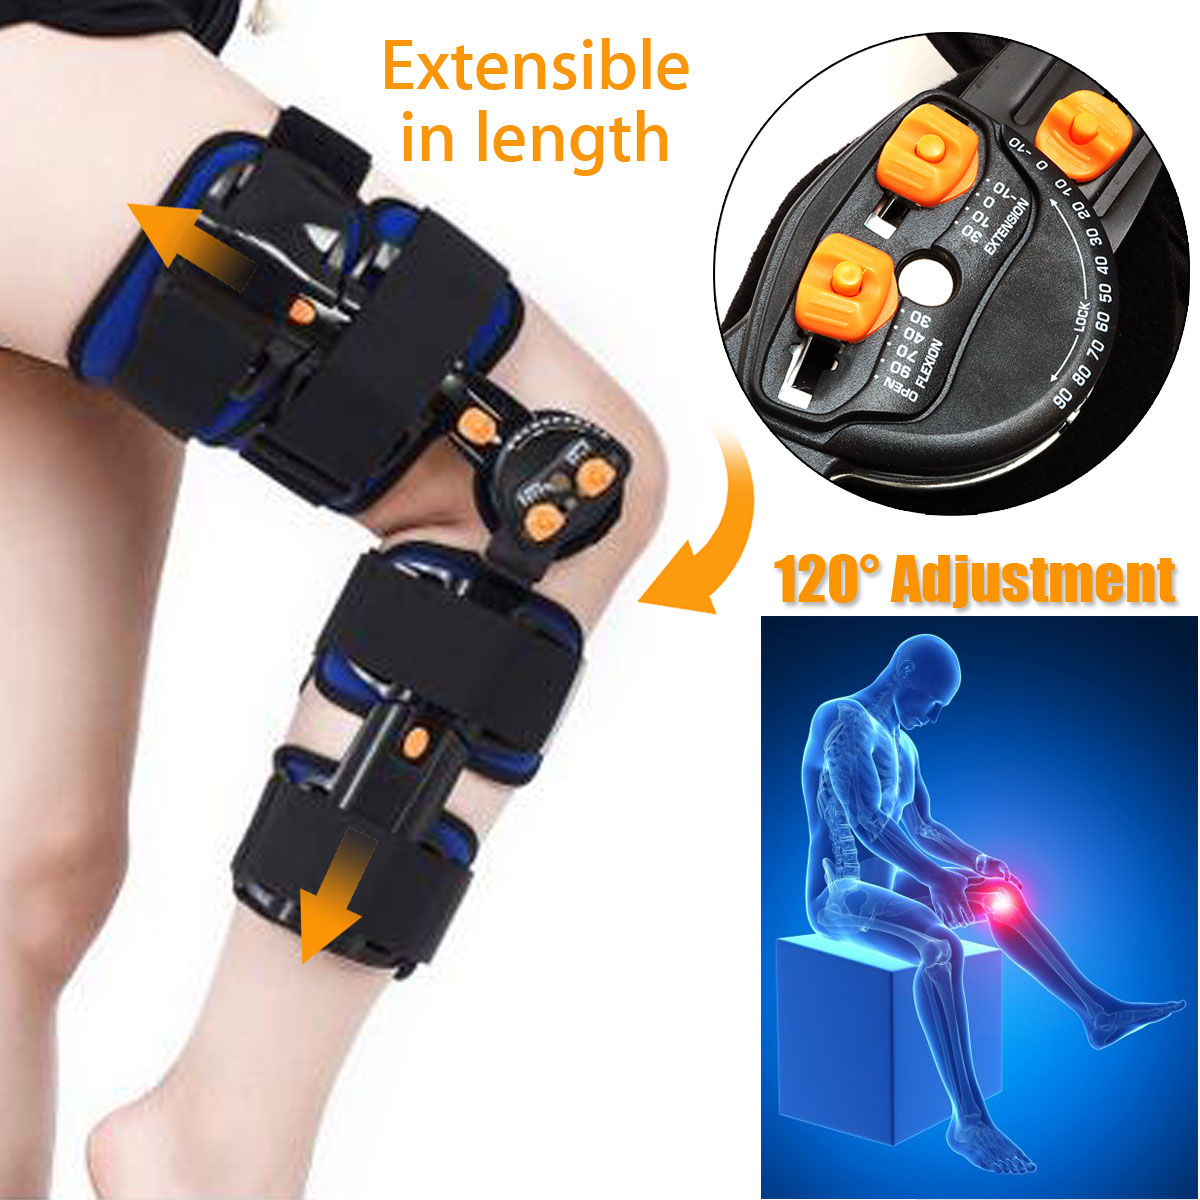 KIFIT Professional T-Scope ROM Post Op Knee Brace Adjustable Hinged Leg Universal Size Braces & Supports kifit rom medical grade 0 120 degrees adjustable hinged knee leg brace support